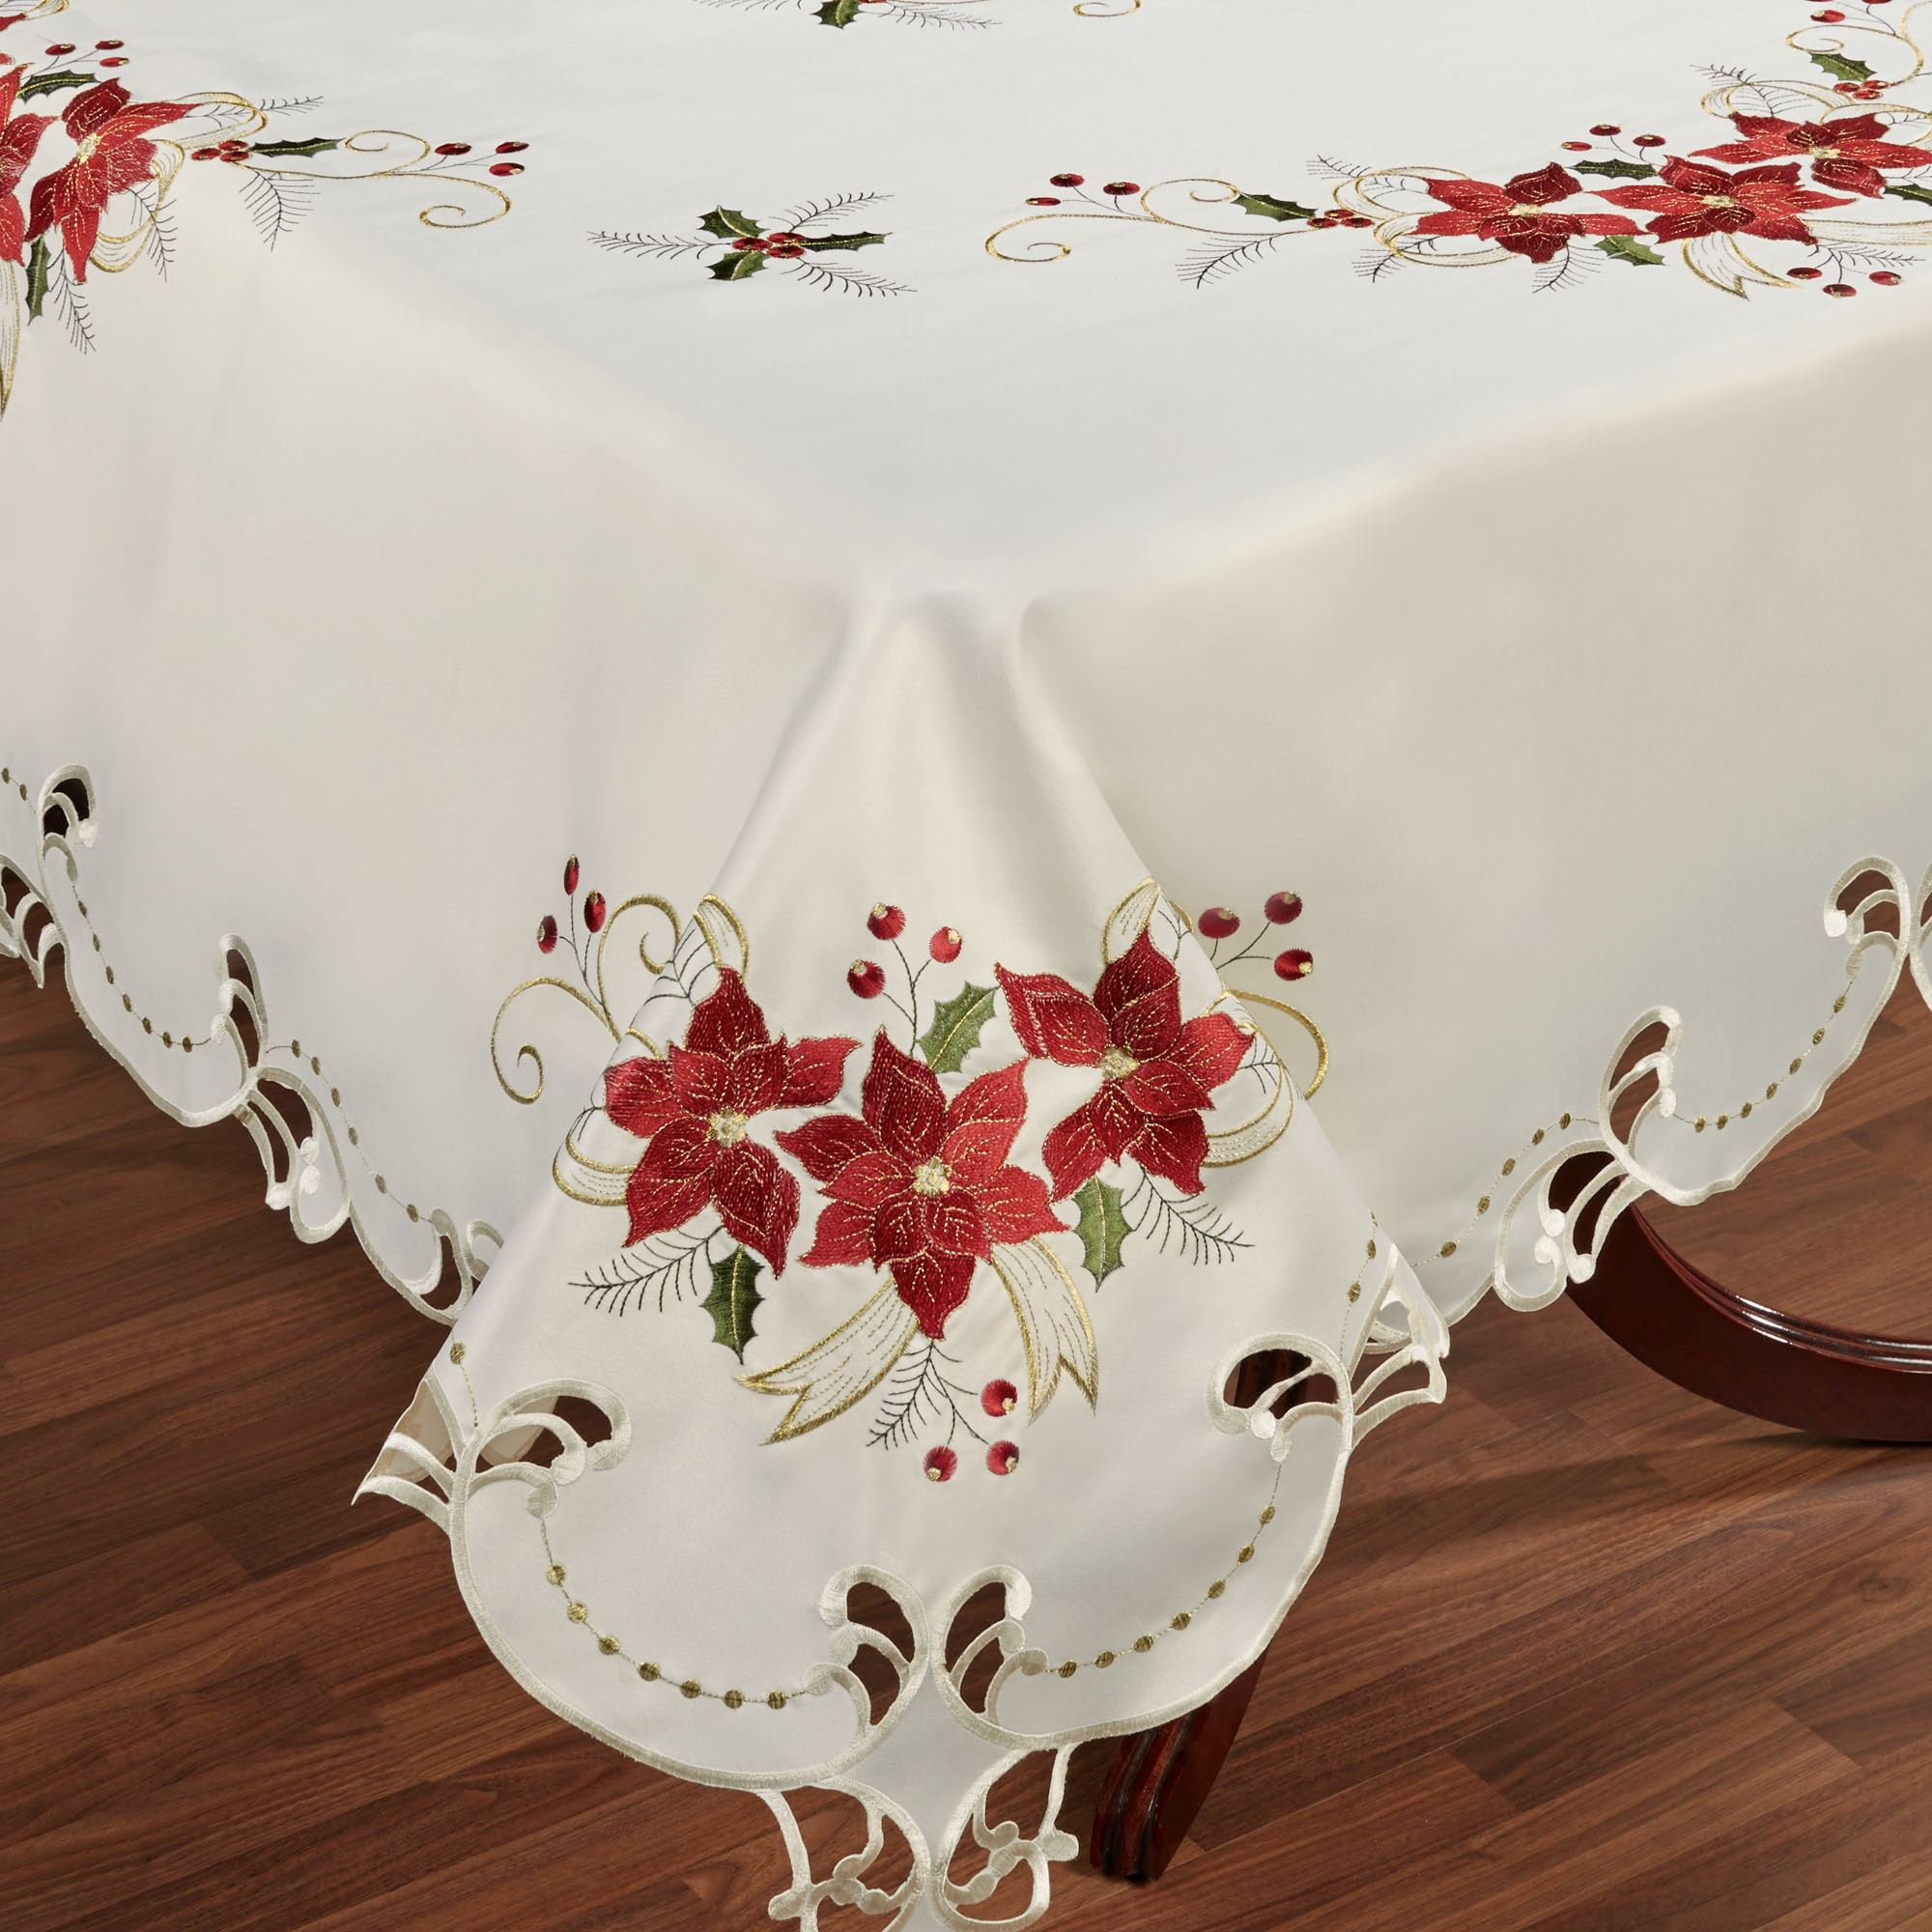 Charmant Poinsettia Palace Tablecloth Champagne